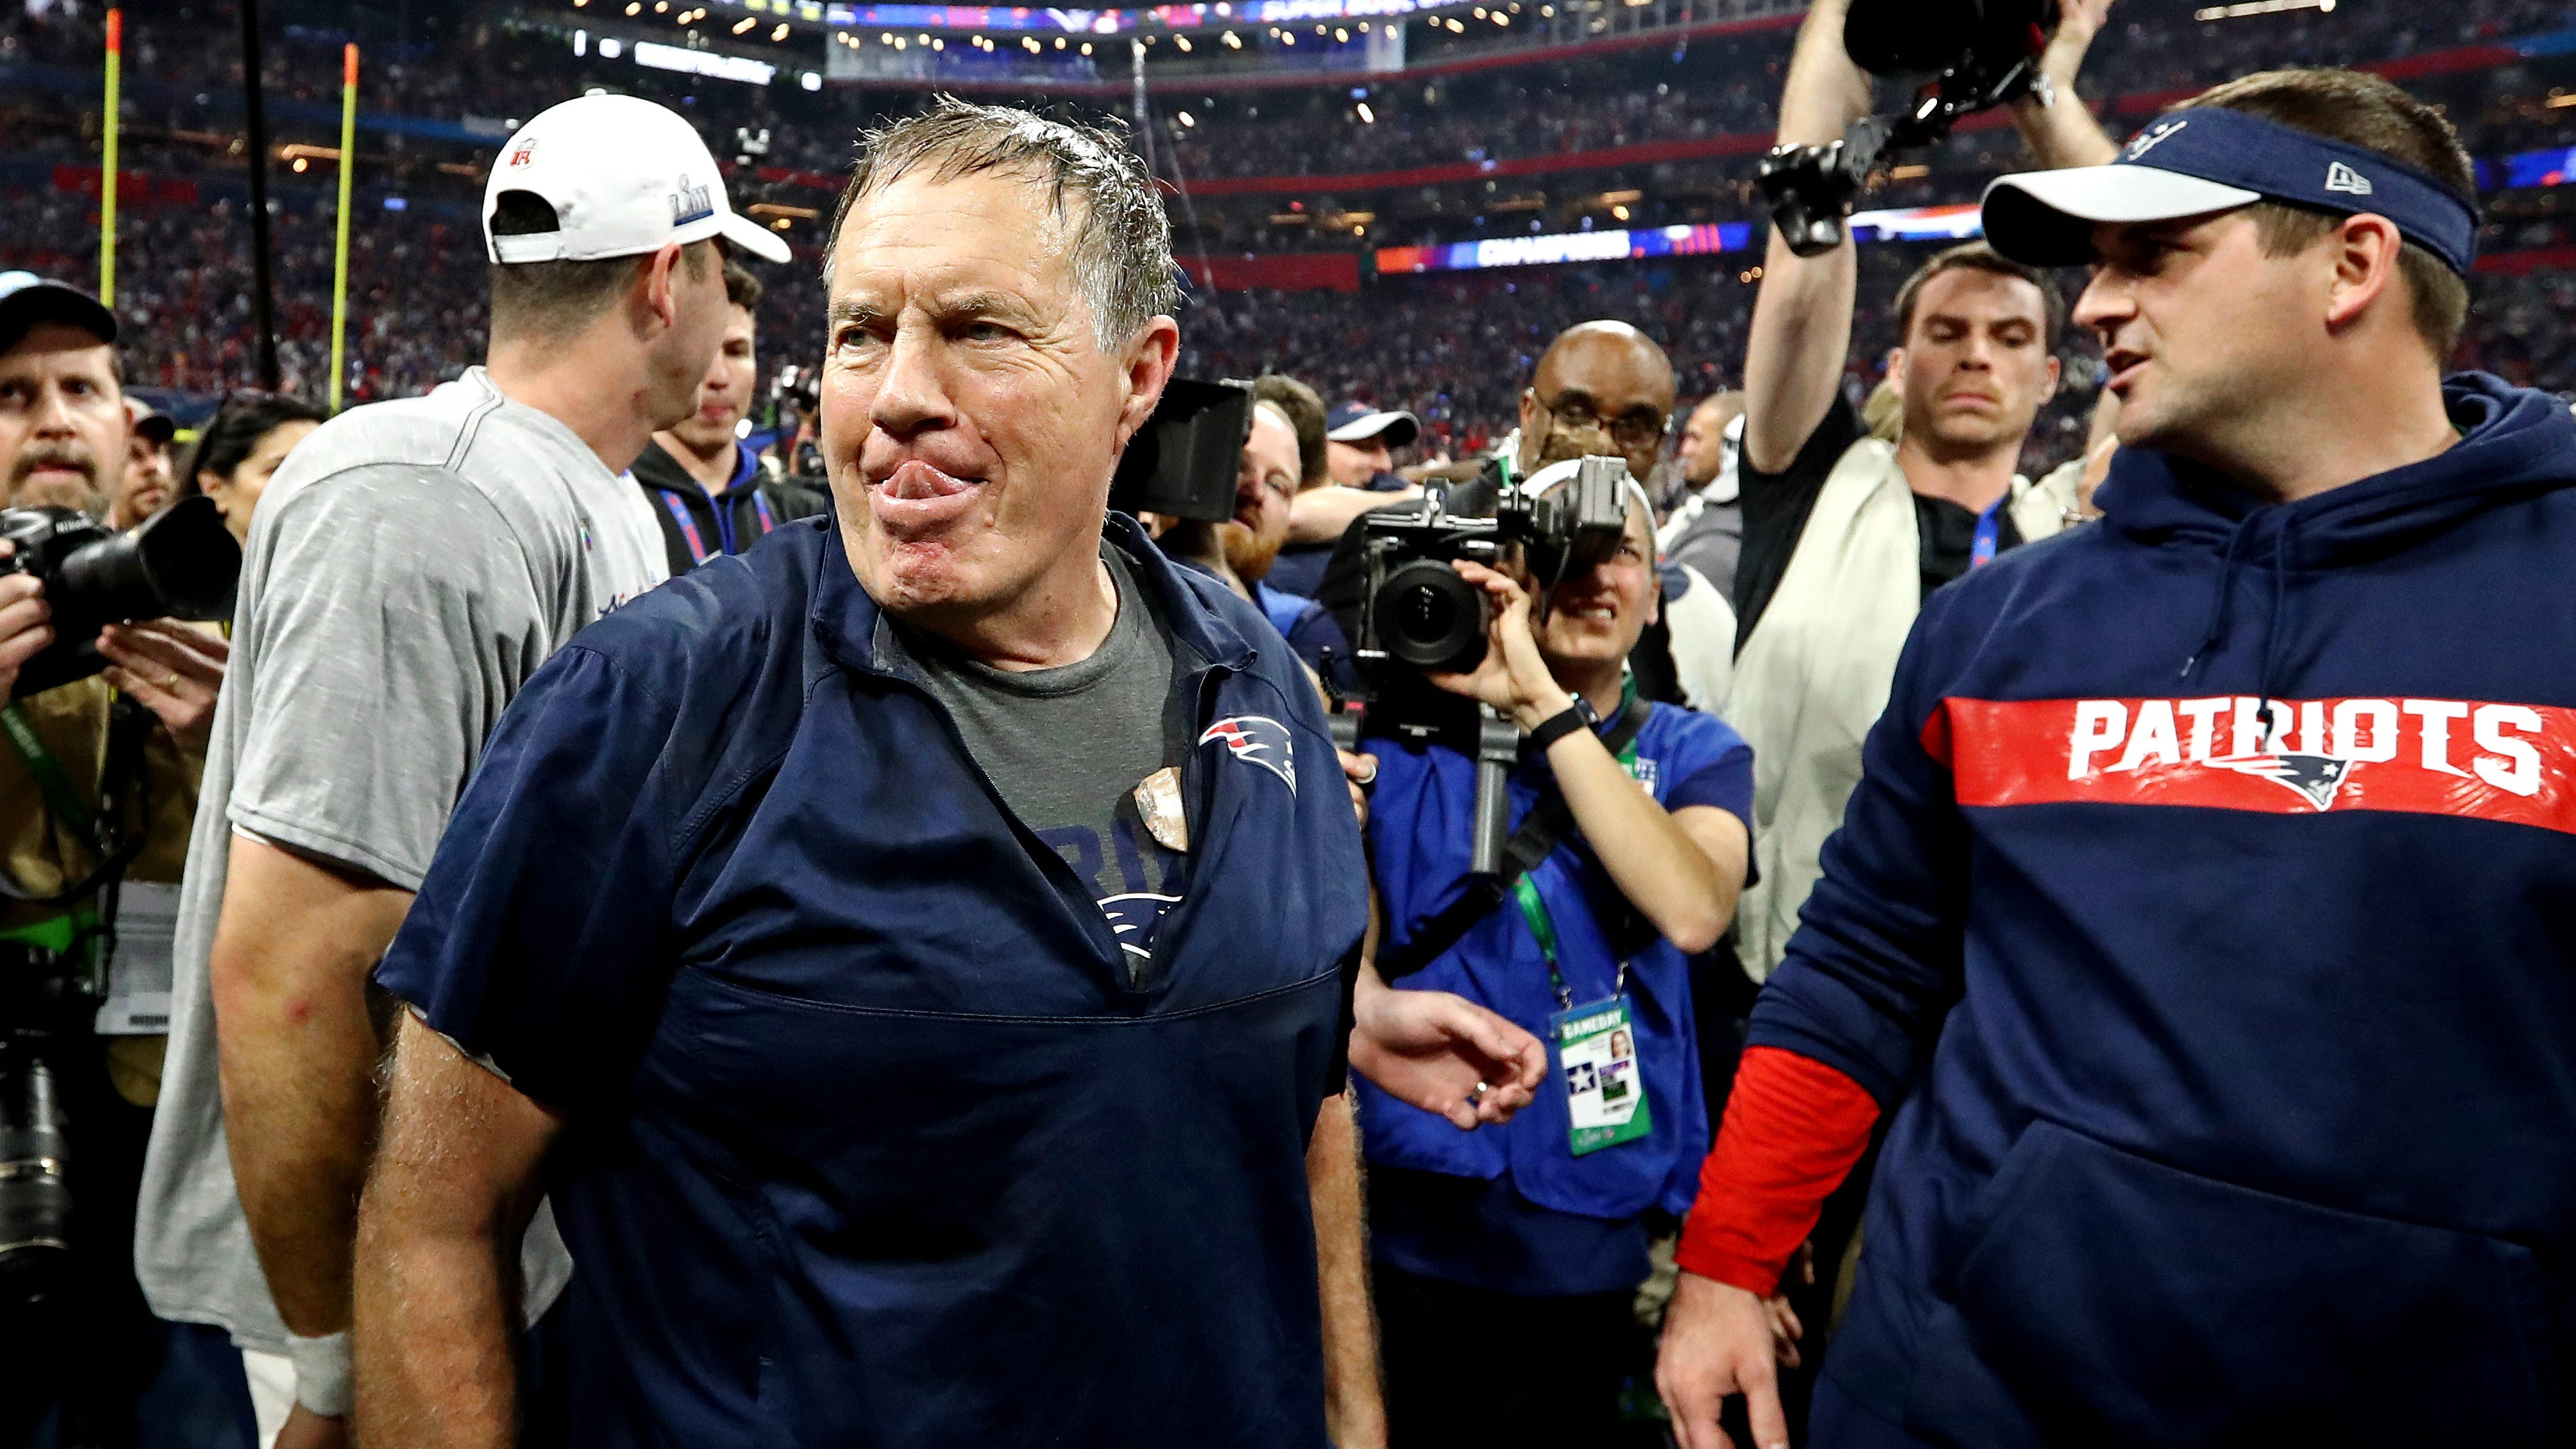 New England Patriots head coach Bill Belichick celebrates after beating the Los Angeles Rams in Super Bowl LIII at Mercedes-Benz Stadium.